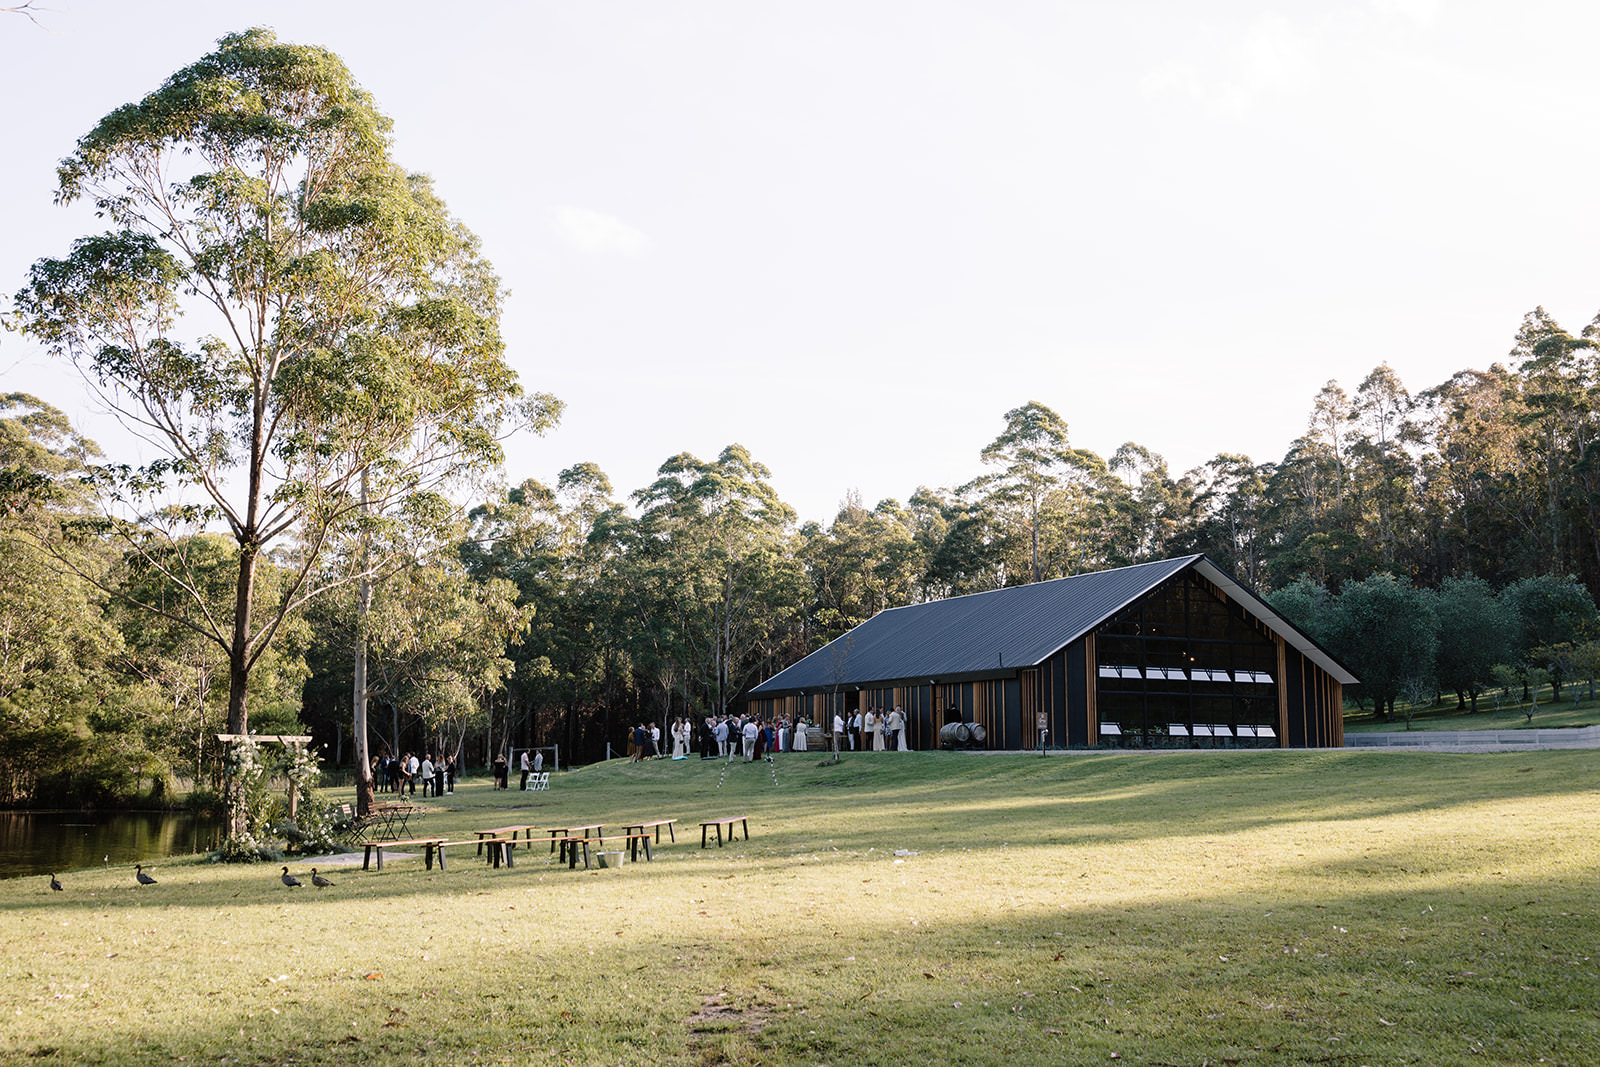 South Coast Wedding Destination featuring wedding barn, outdoor ceremony, wedding accommodation and bush setting